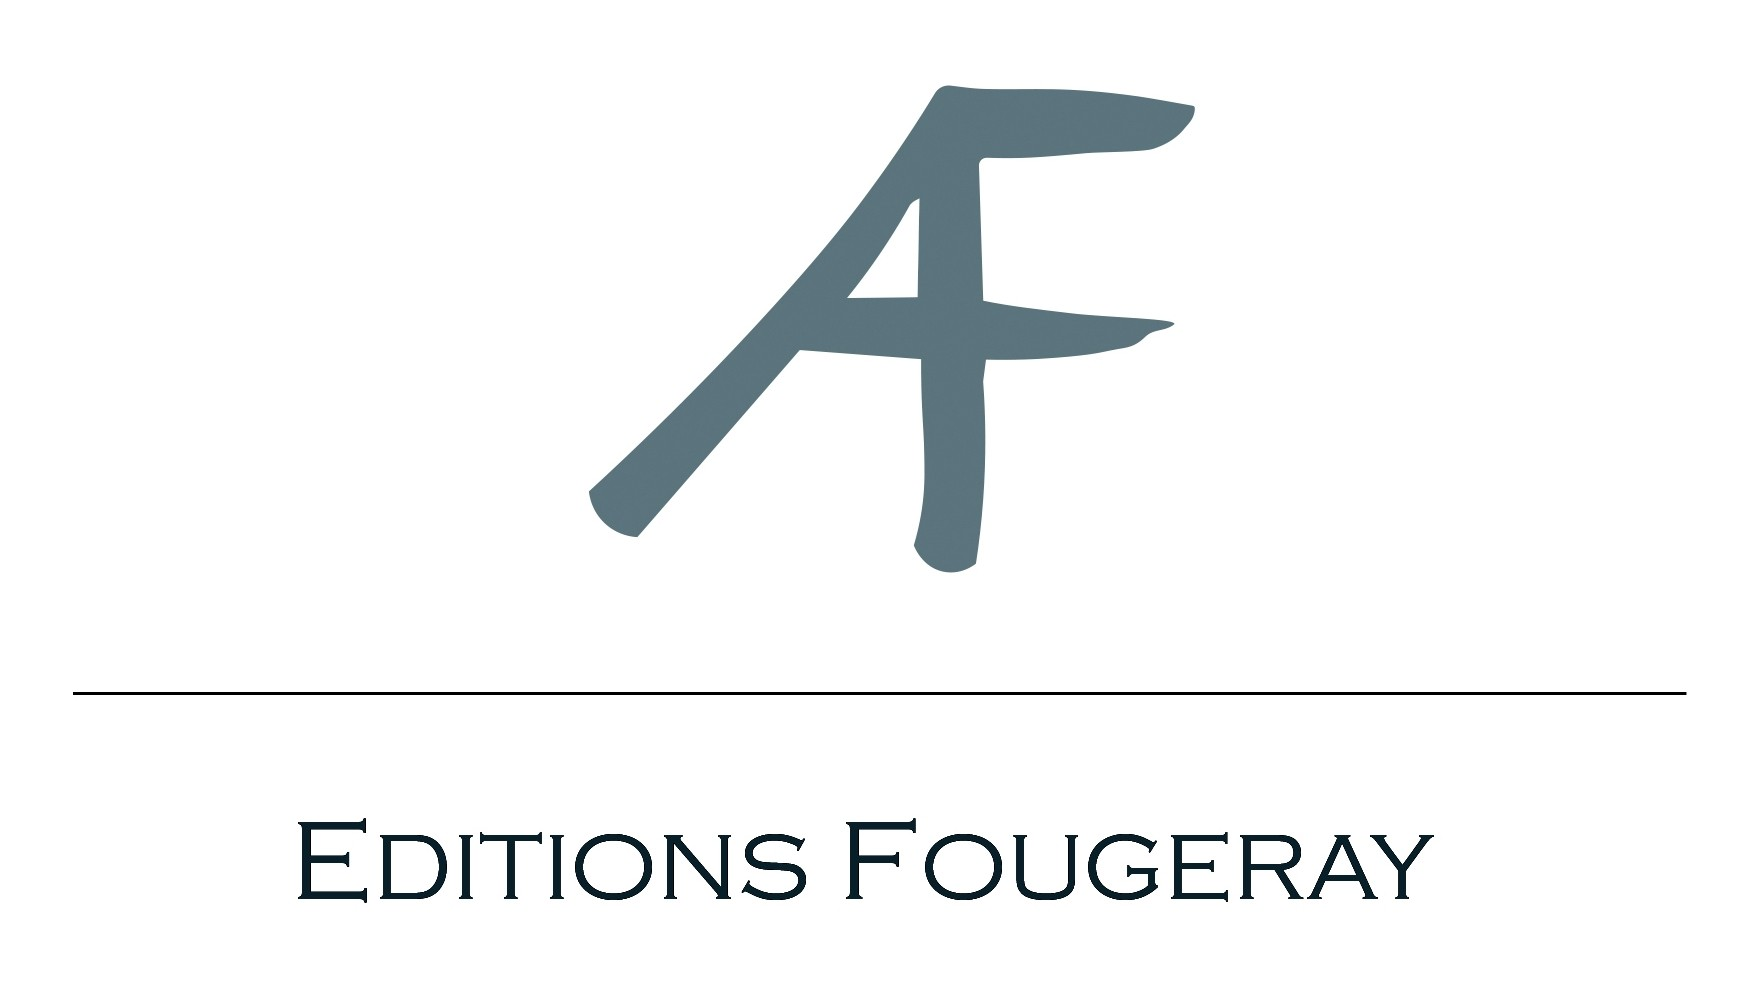 Editions Fougeray